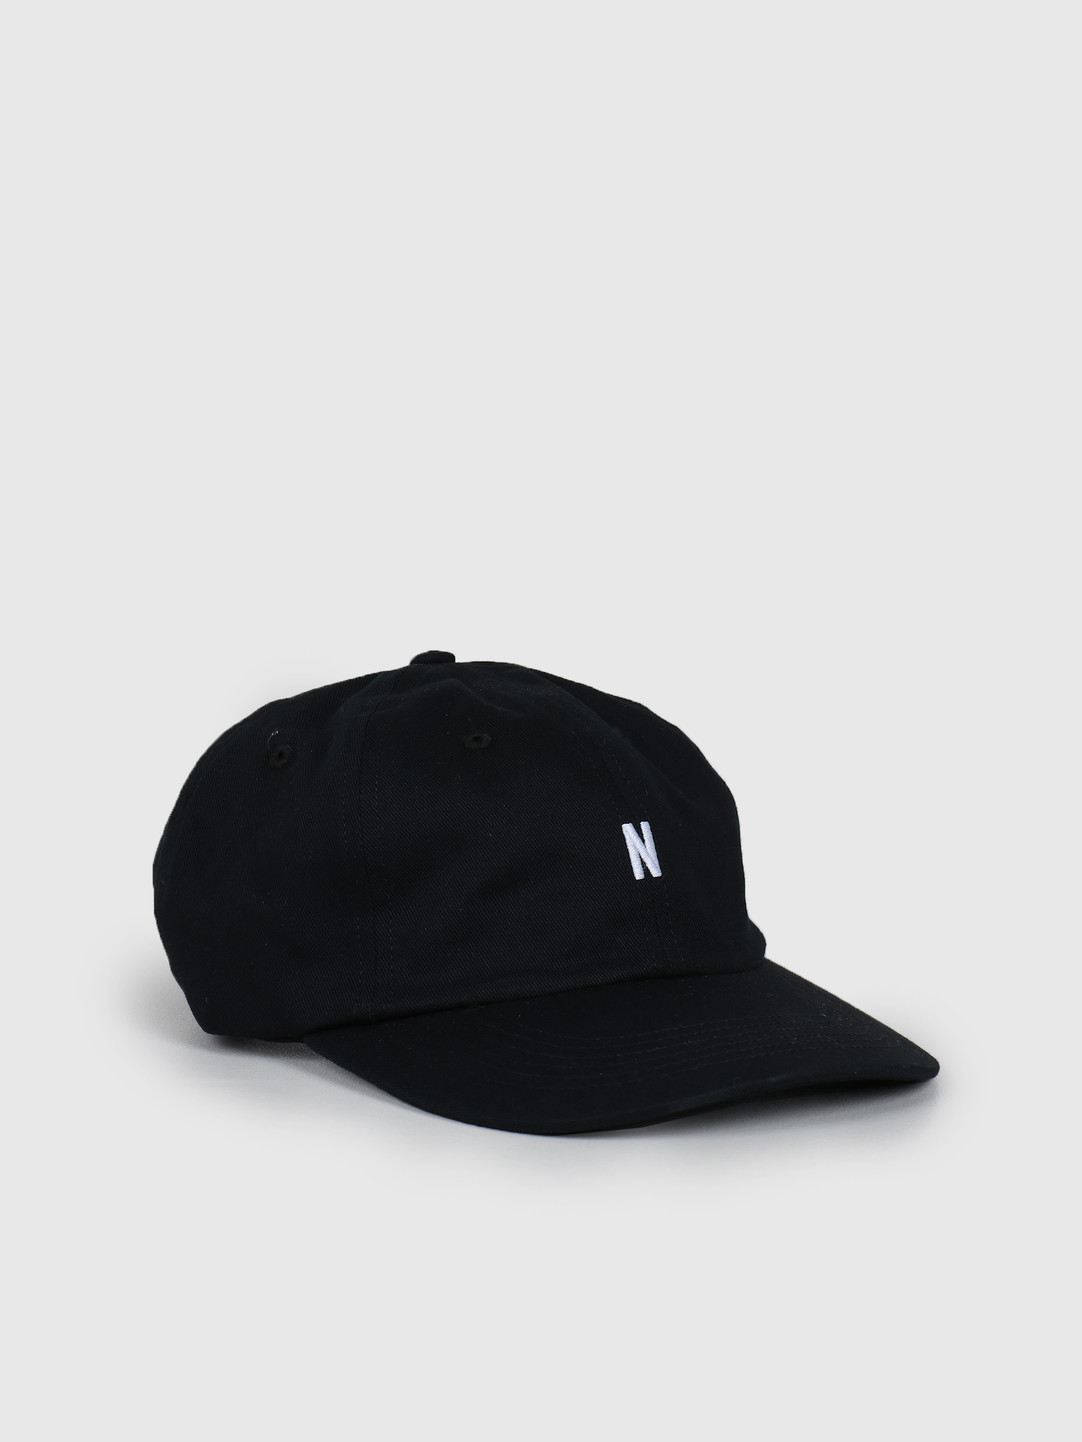 Norse Projects Norse Projects Twill Sports Cap Black N80-0001-9999